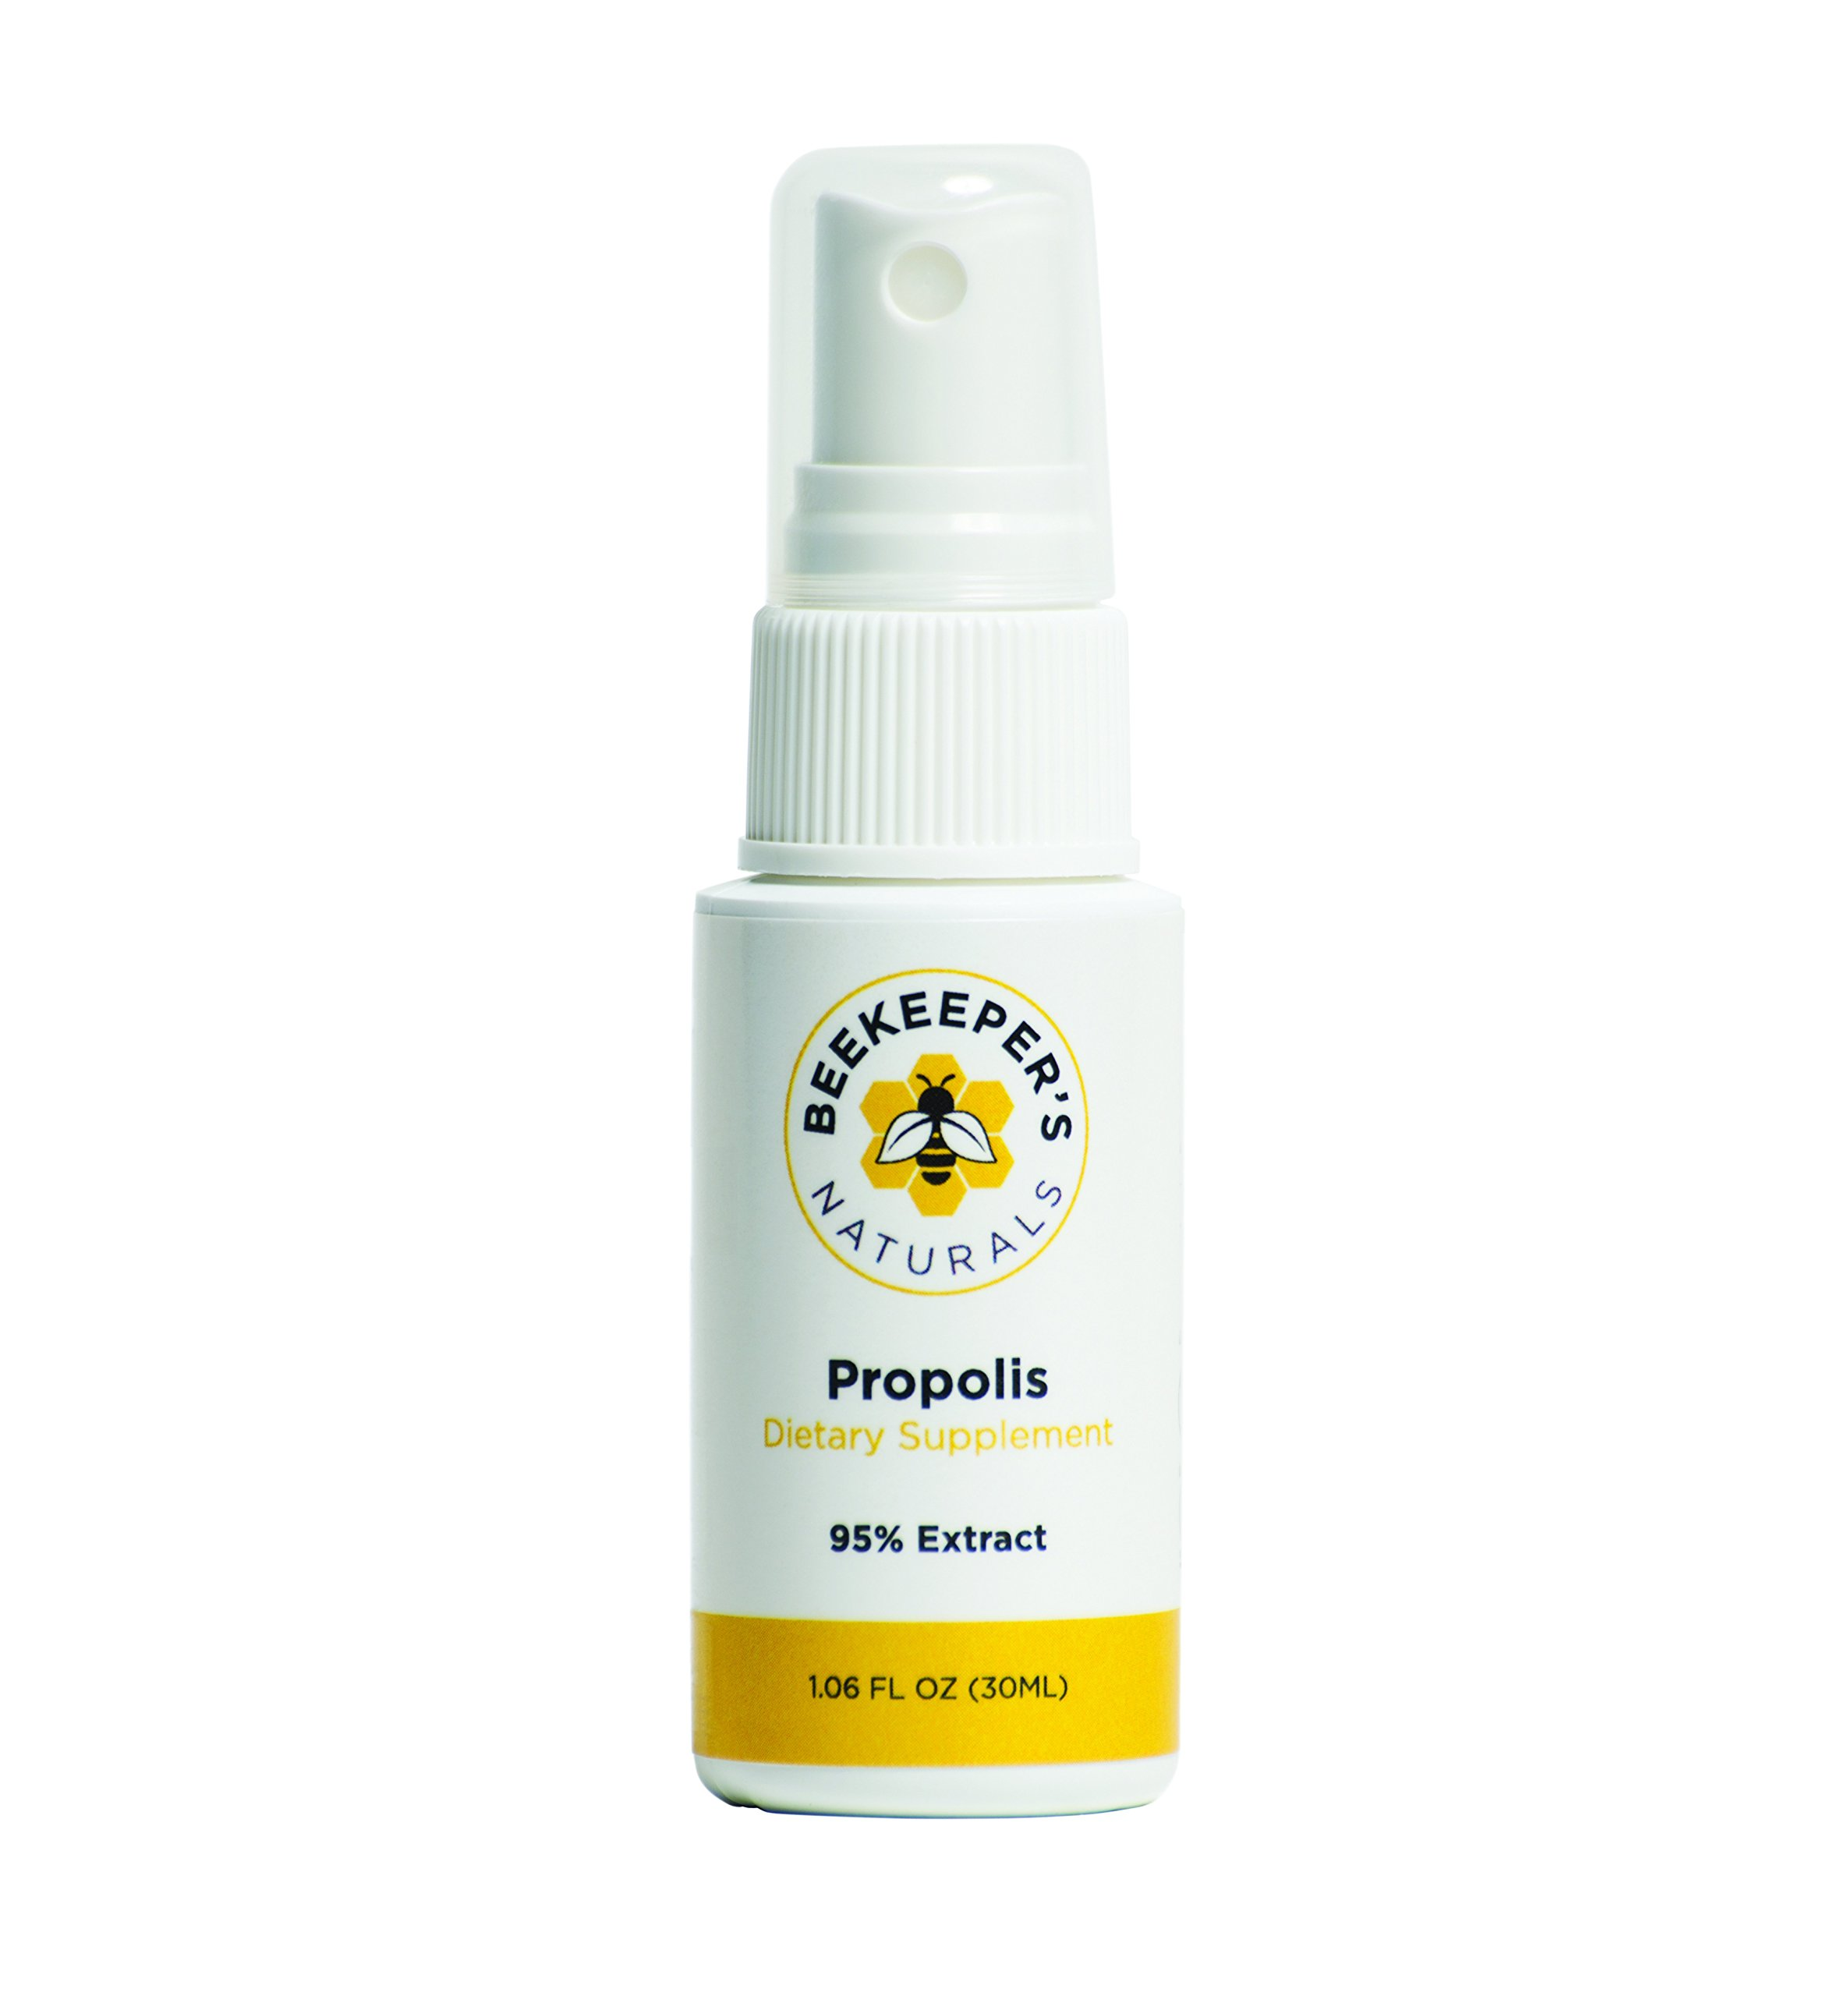 Bee Propolis - Immune Support - Sore Throat Spray - 100% MONEYBACK GUARANTEE from Beekeeper's Naturals - NA sourced premium 95% Propolis Extract - natural cold flu cough medicine - great for kids!